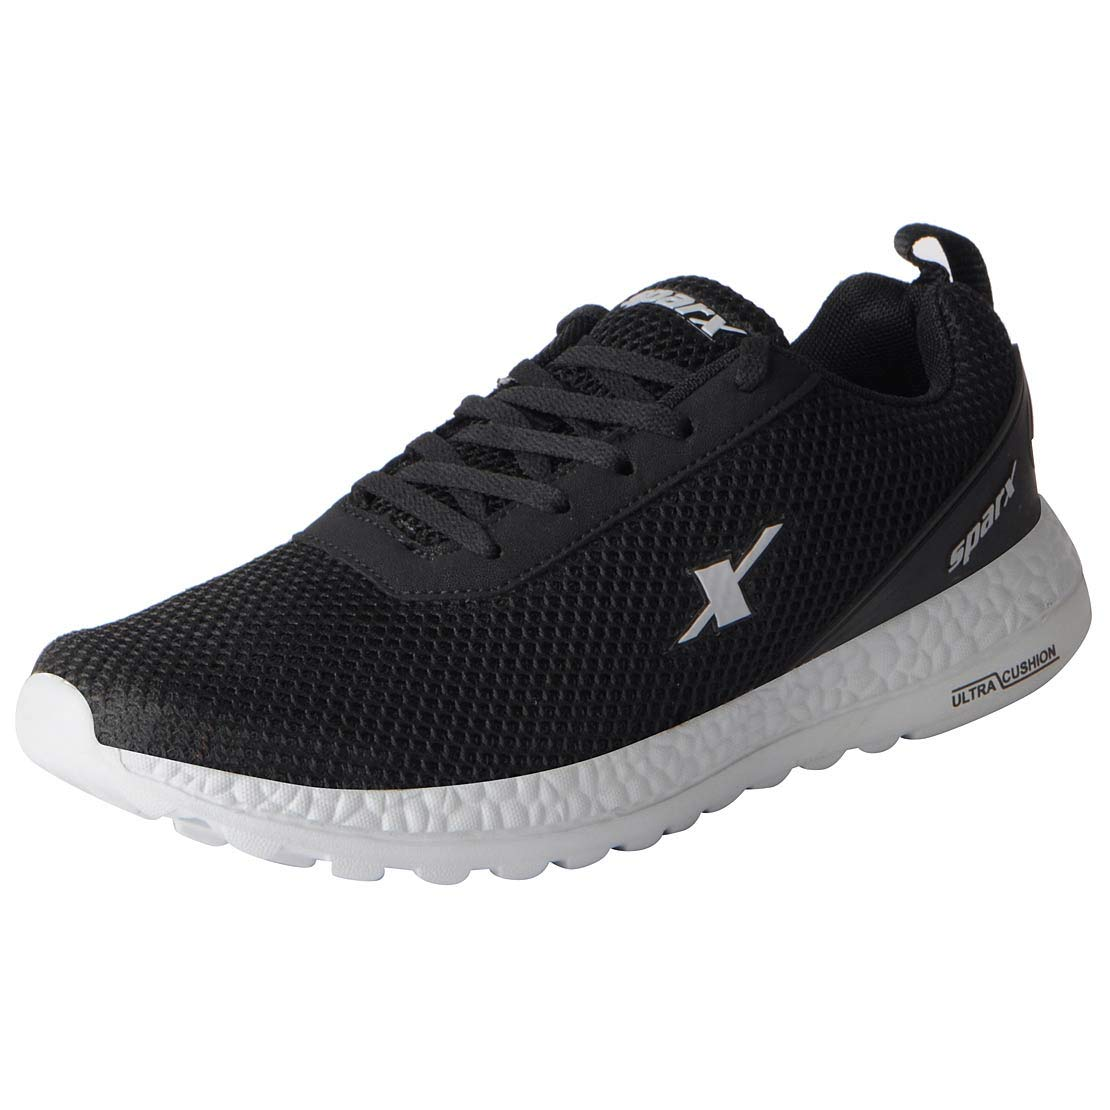 Sparx running shoes under 1000 for men